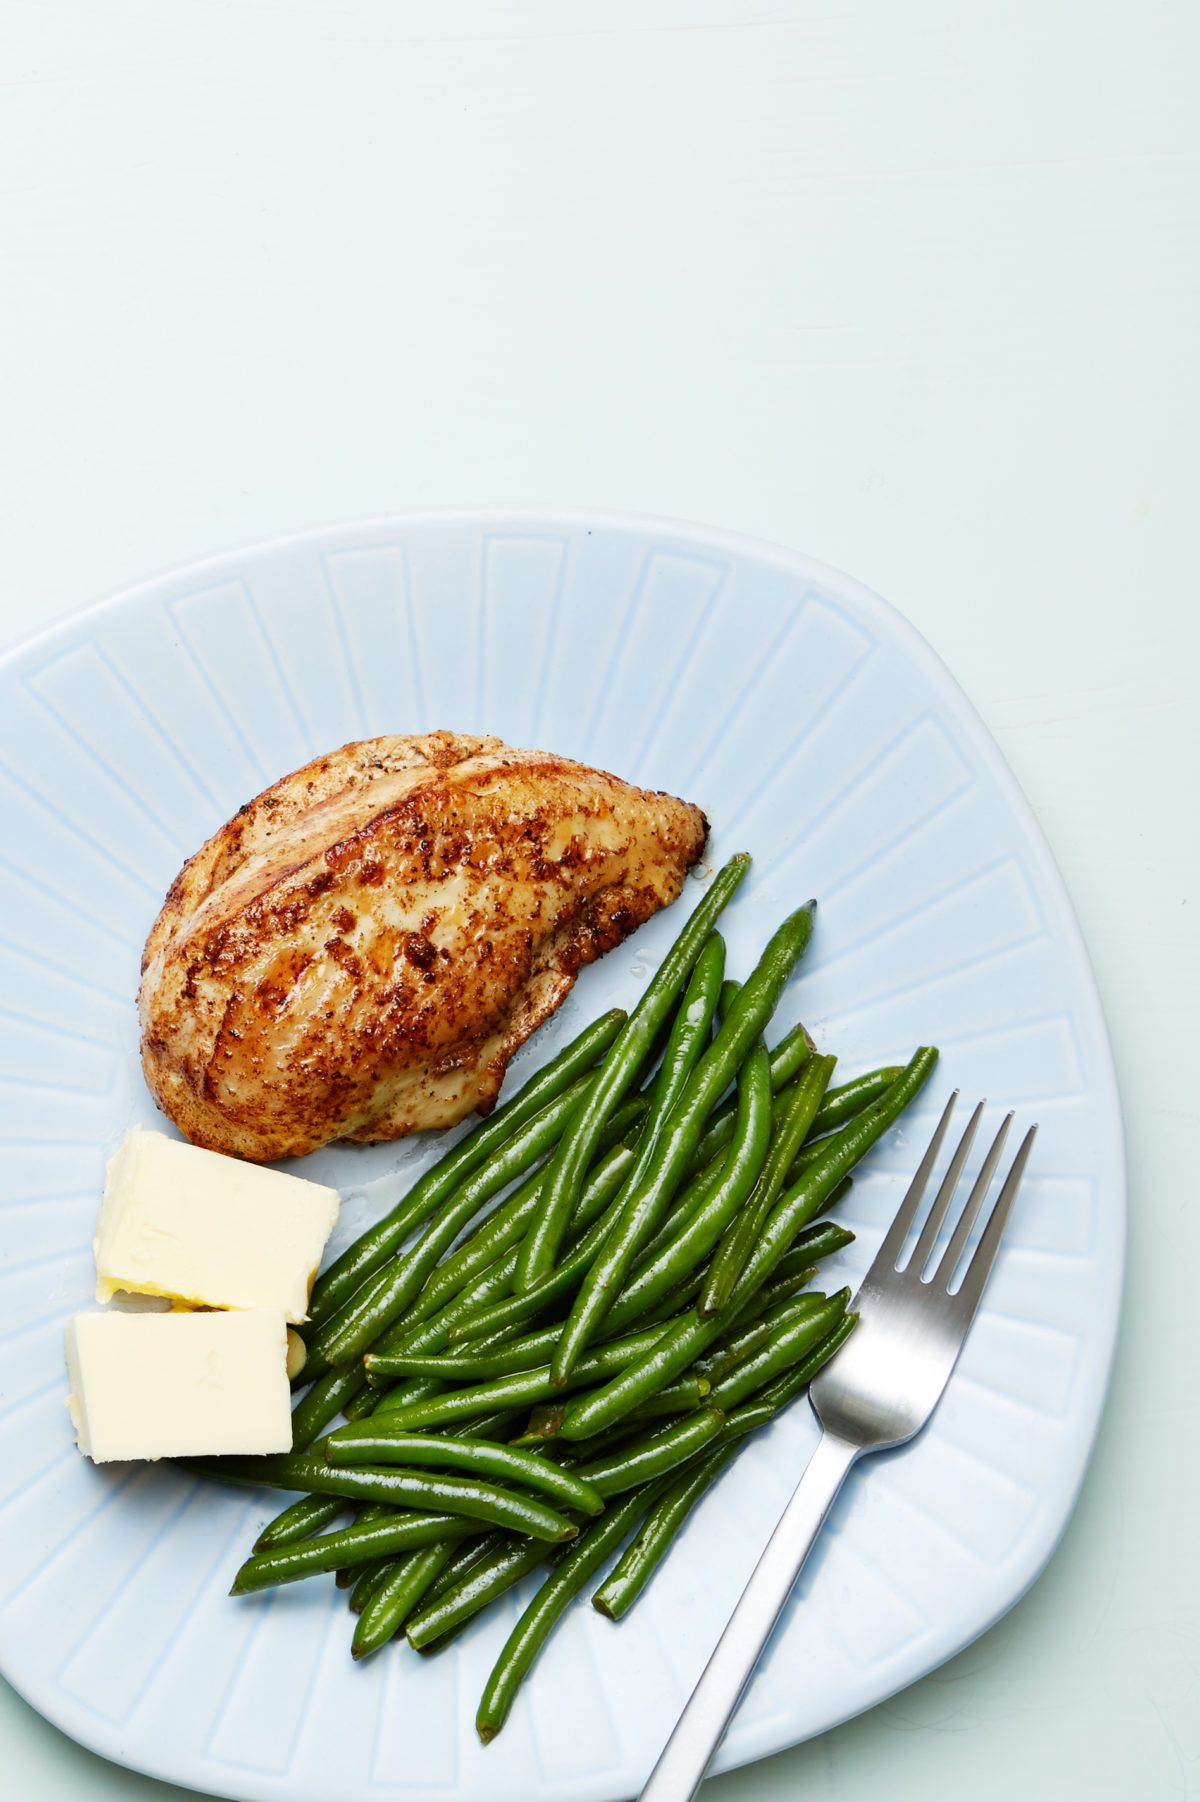 Keto chicken and green beans plate Recipe in 2020